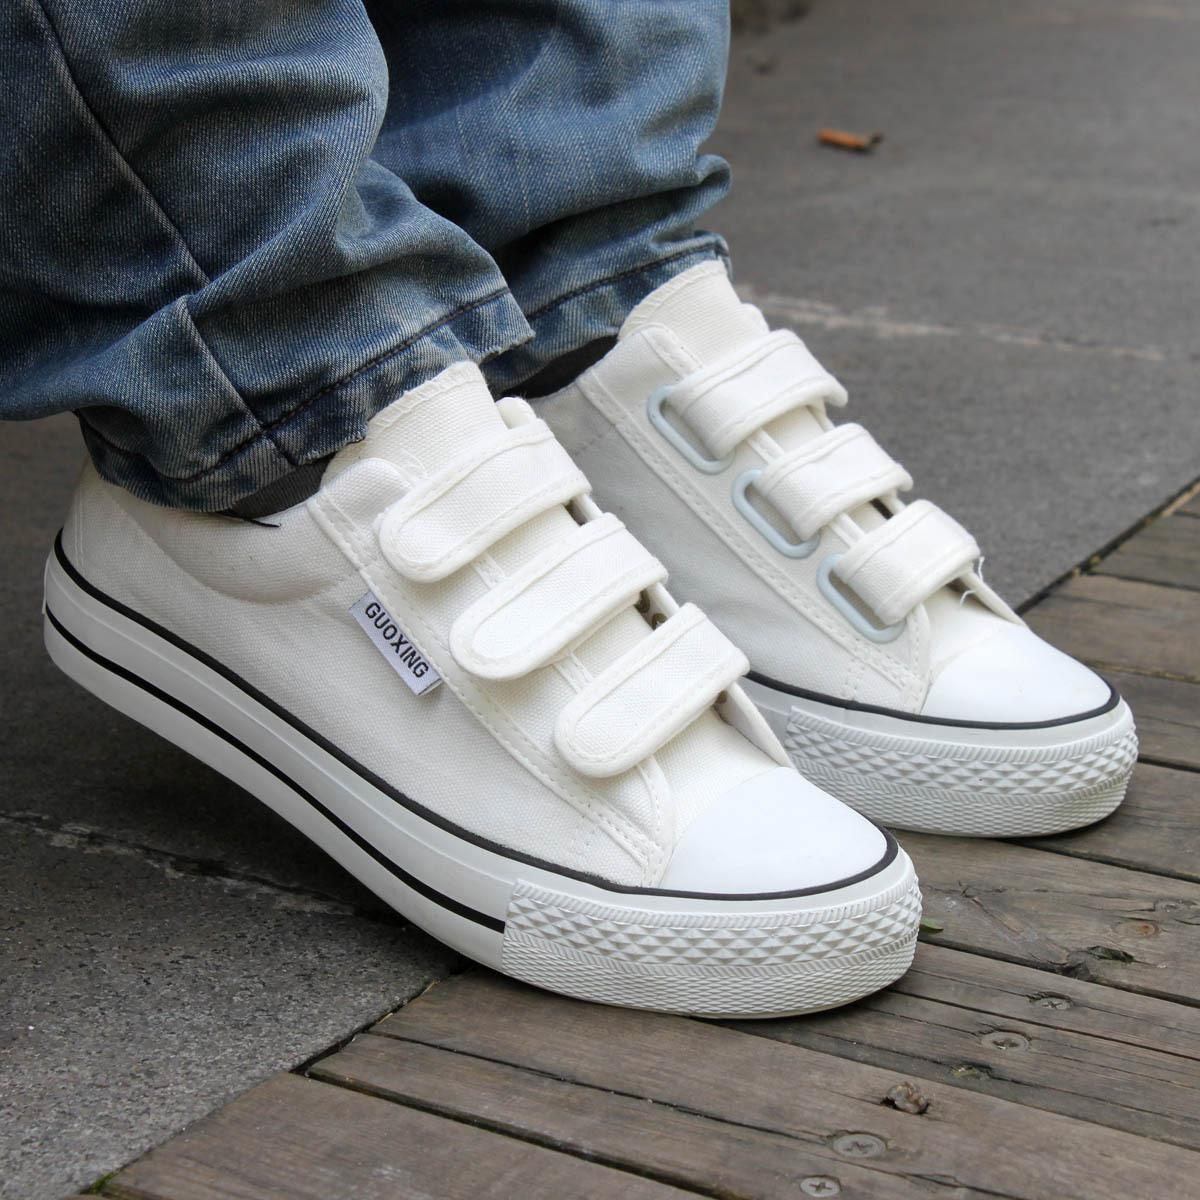 Mens fashion shoes in 2013